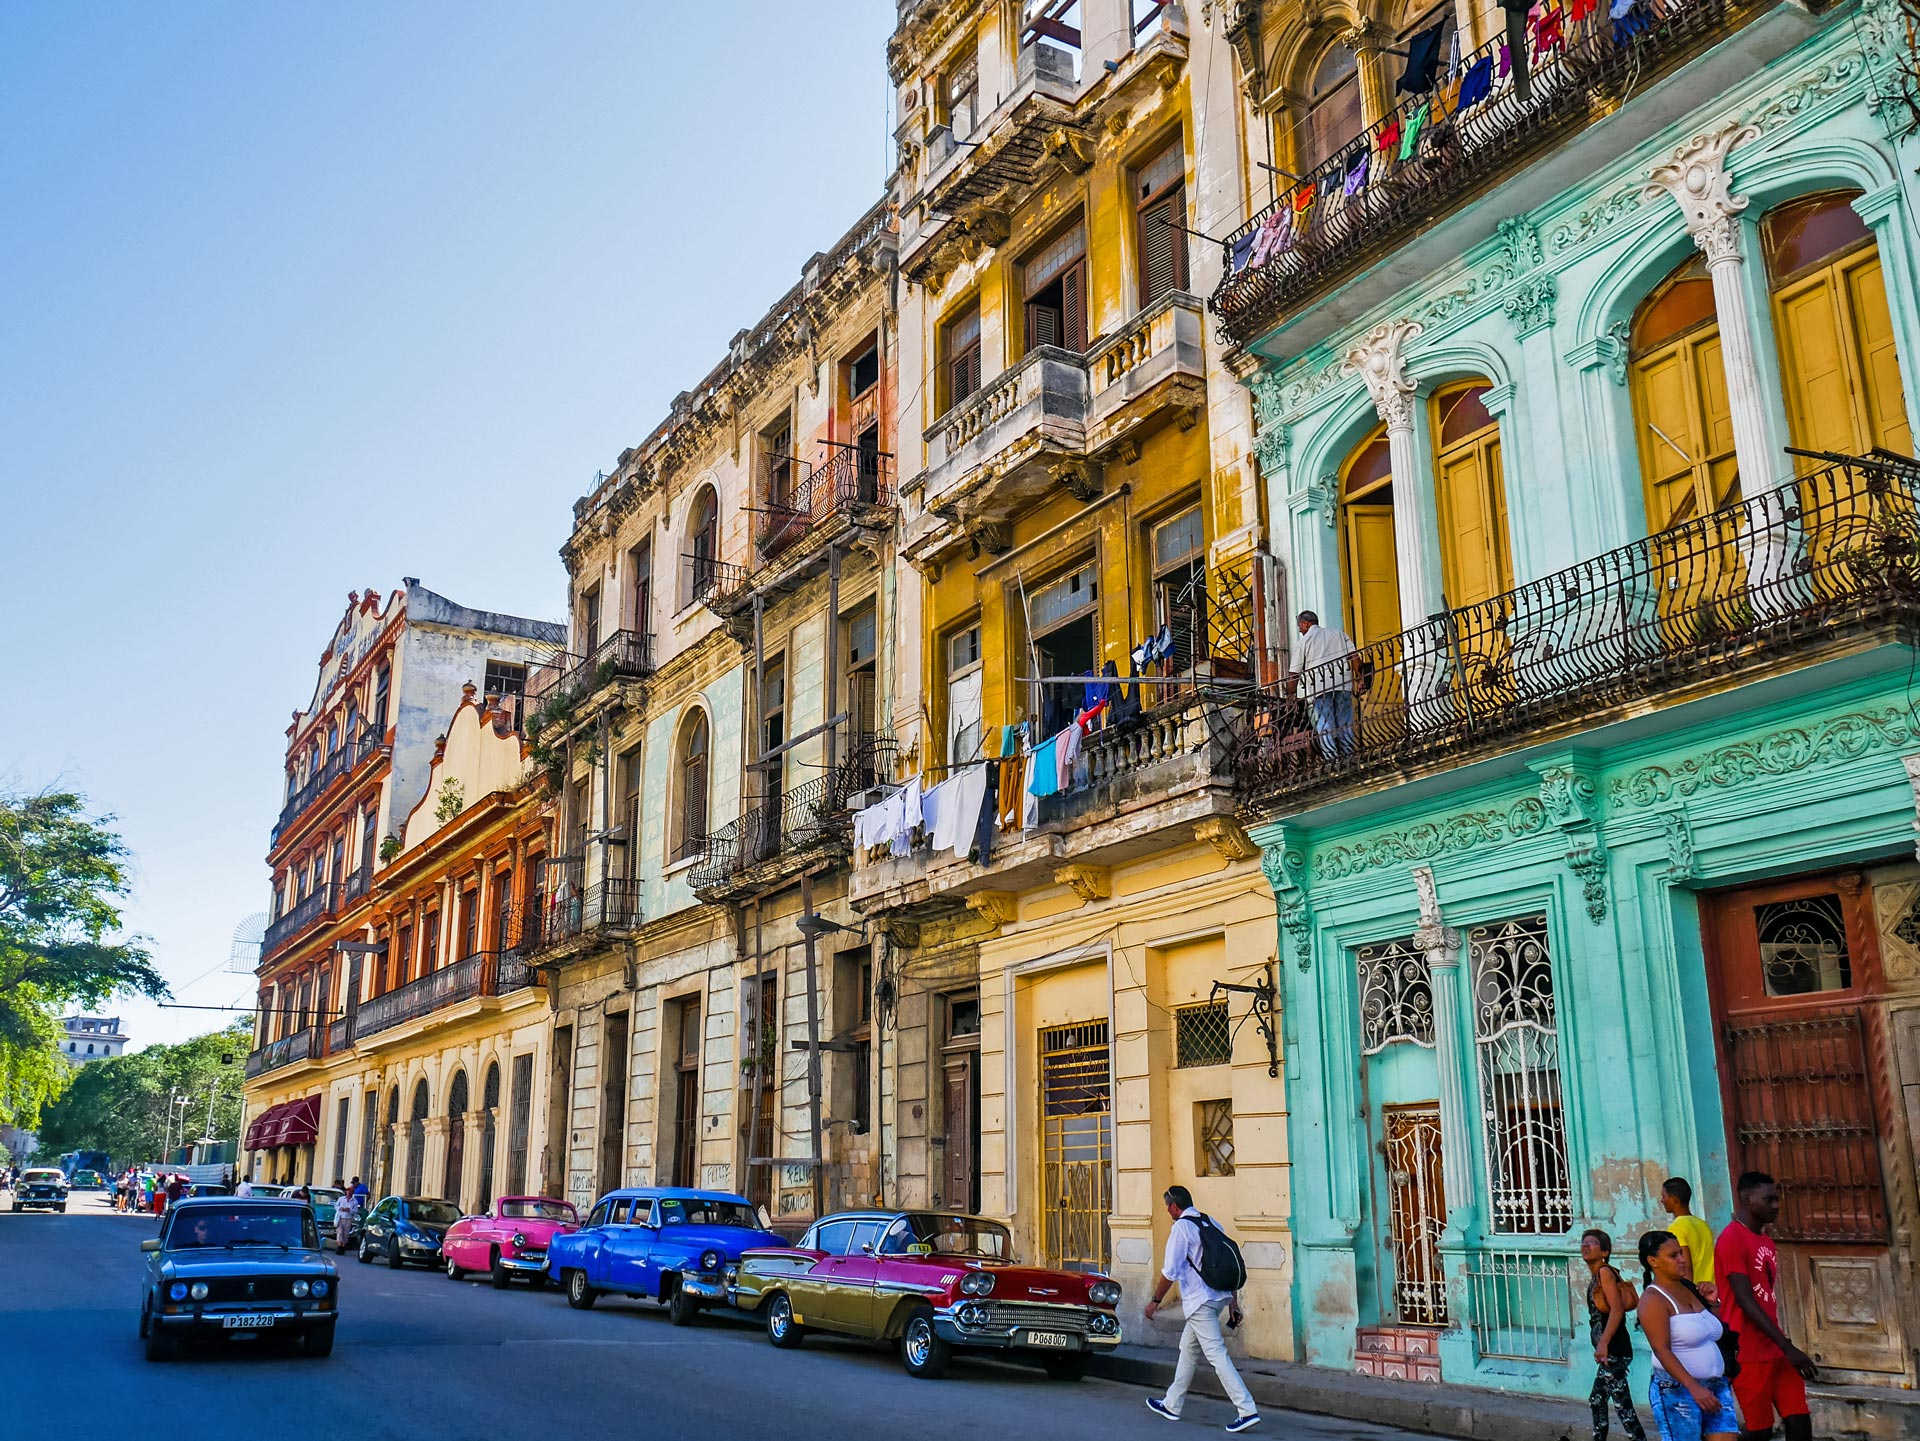 Street with colorful houses, classic cars and people walking in Havana, Cuba